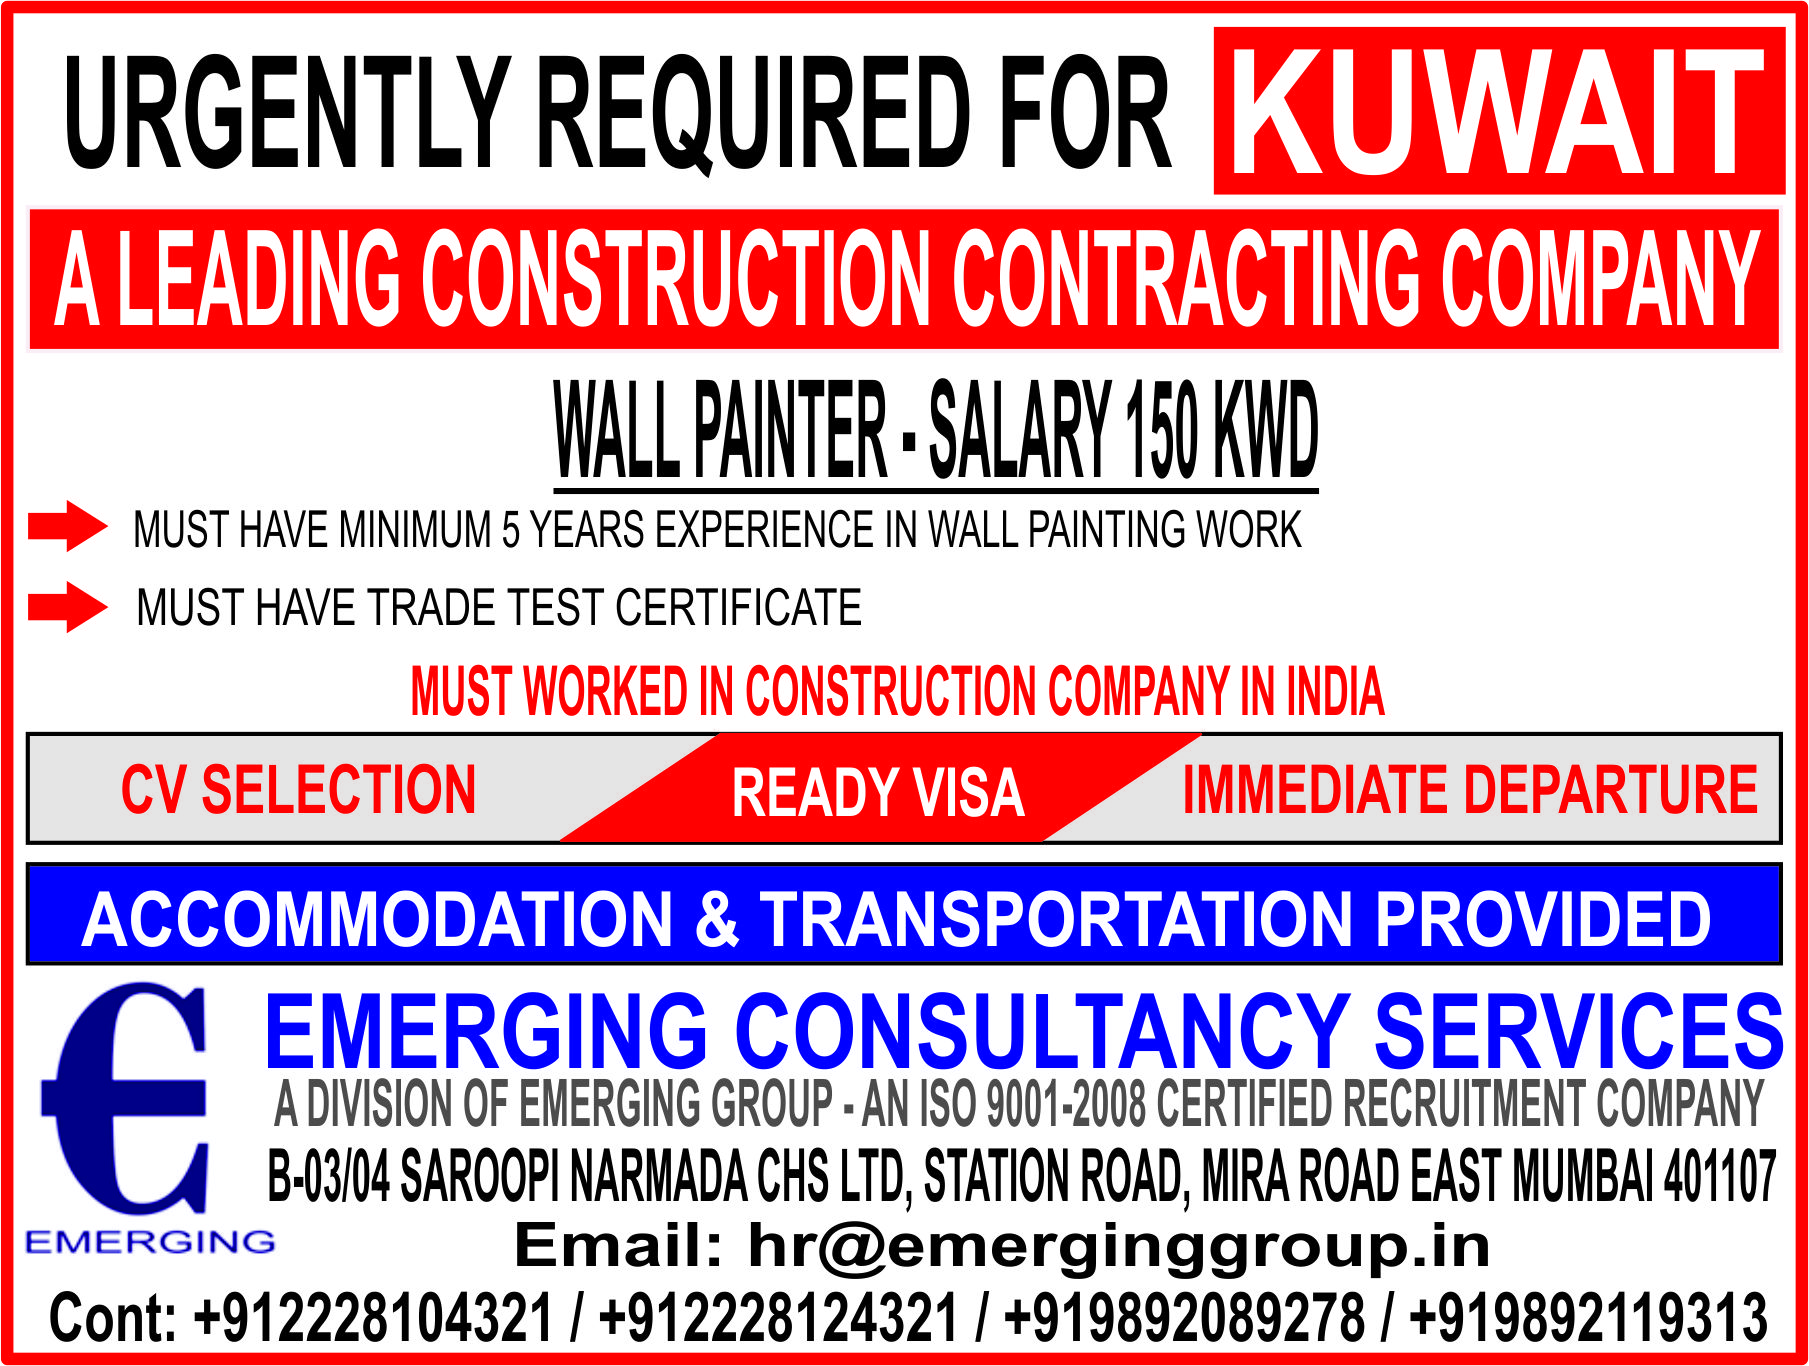 URGENTLY HIRING FOR KUWAIT - WALL PAINTER